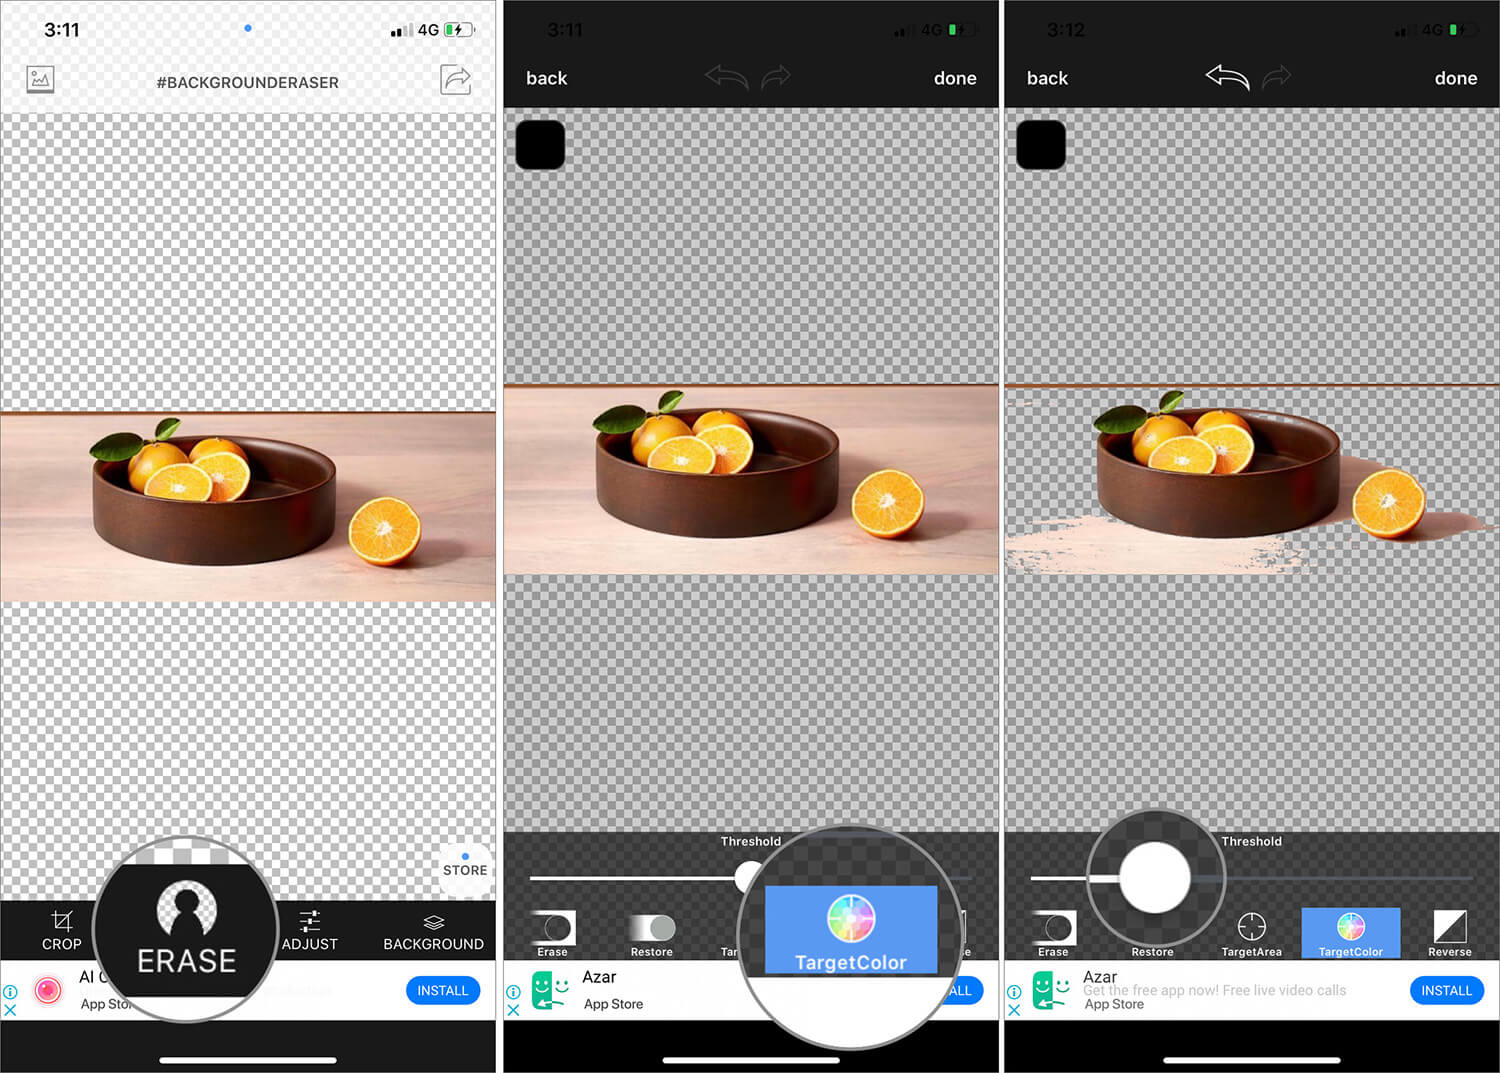 Use Target Color Tool to Remove Image Background on iPhone Background Eraser App